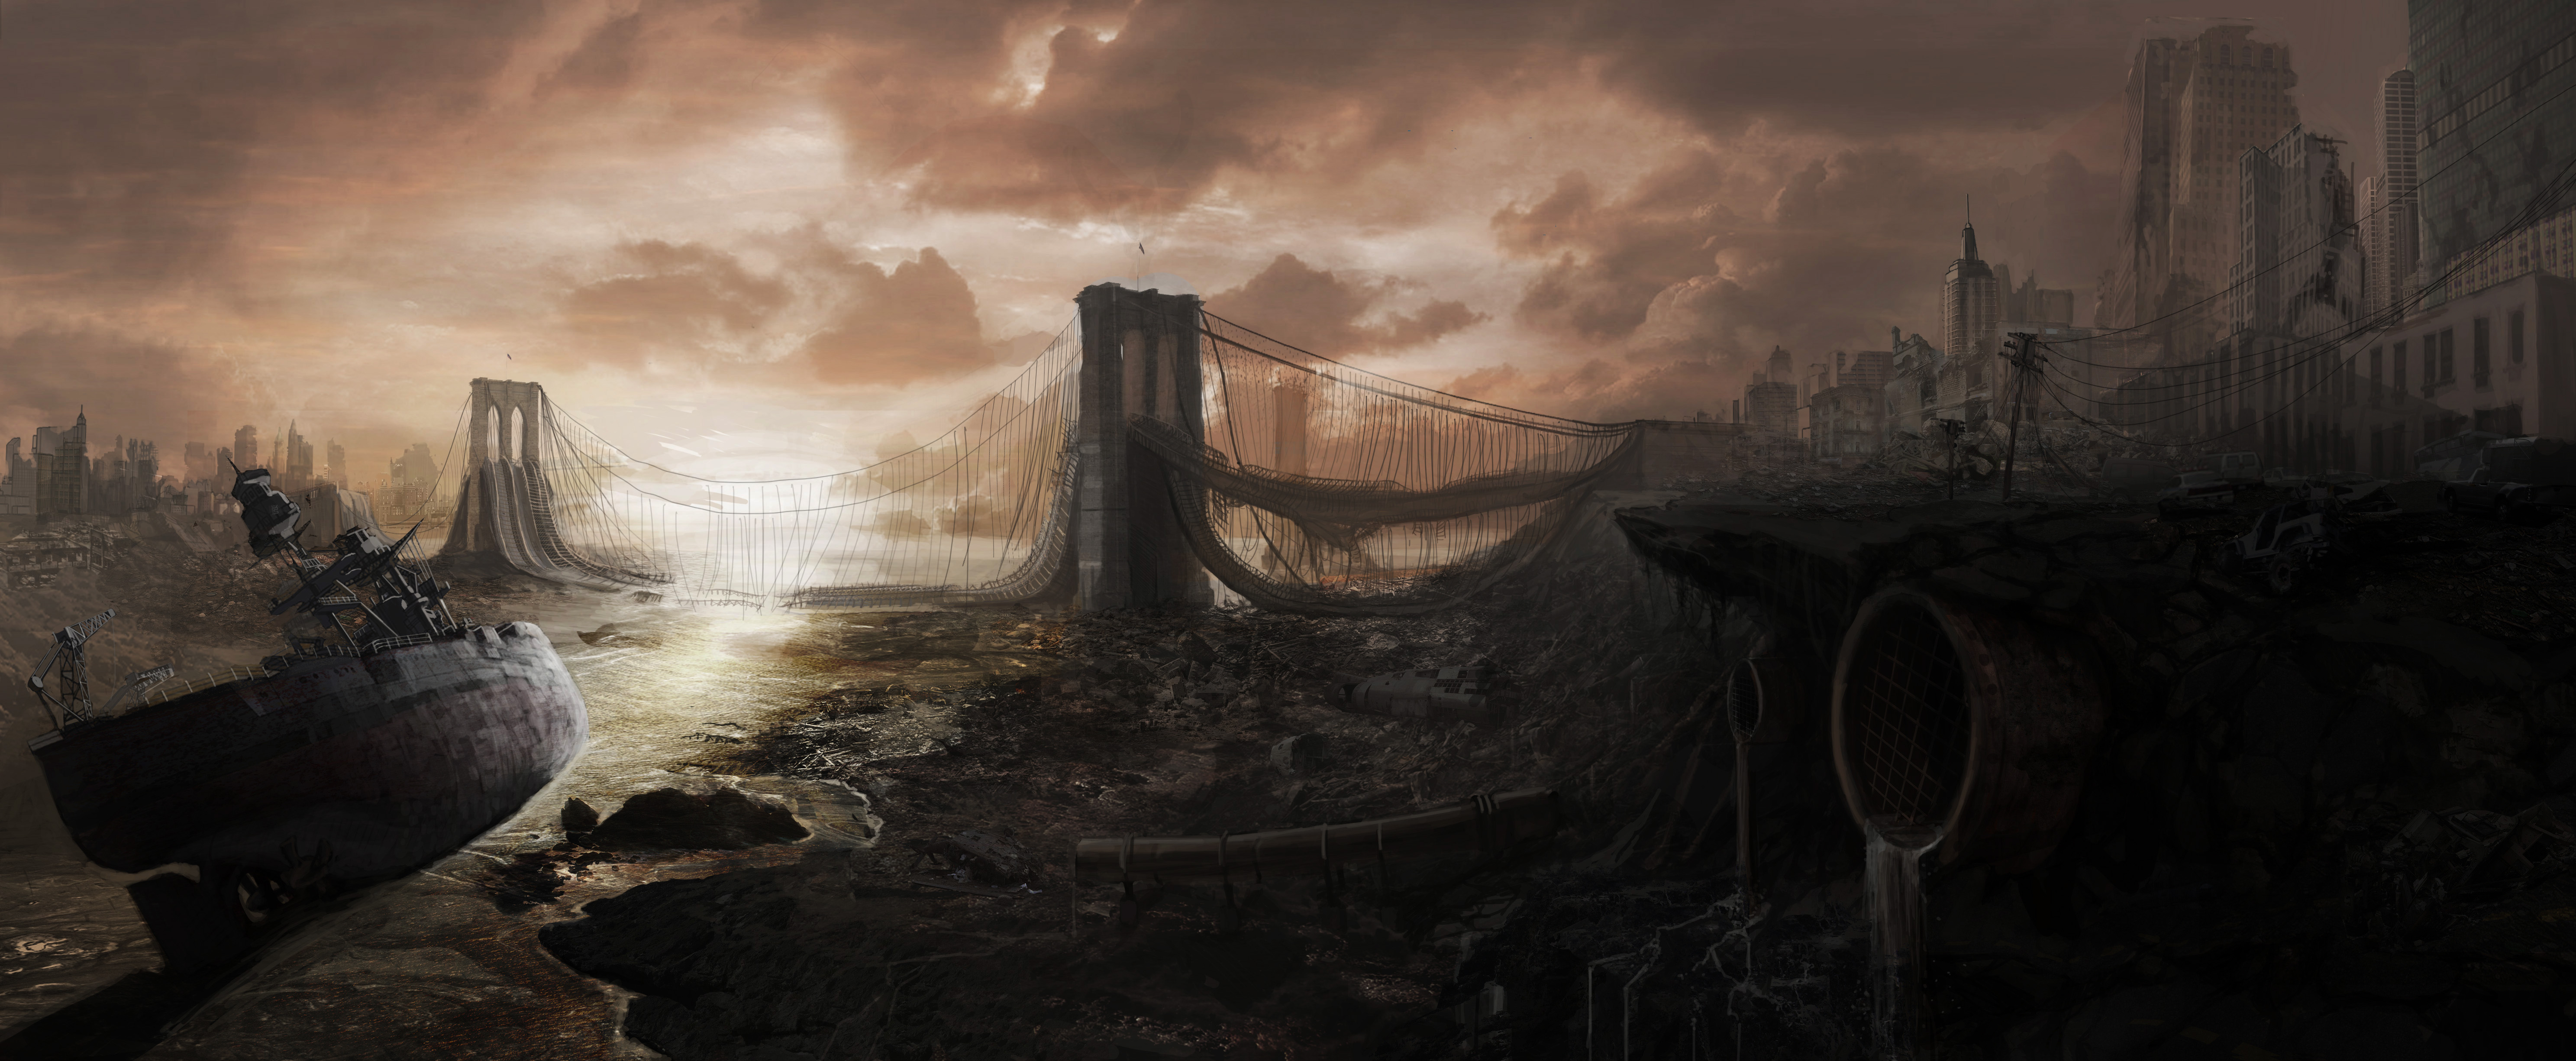 post_apocalyptic_picture_image_digital_art